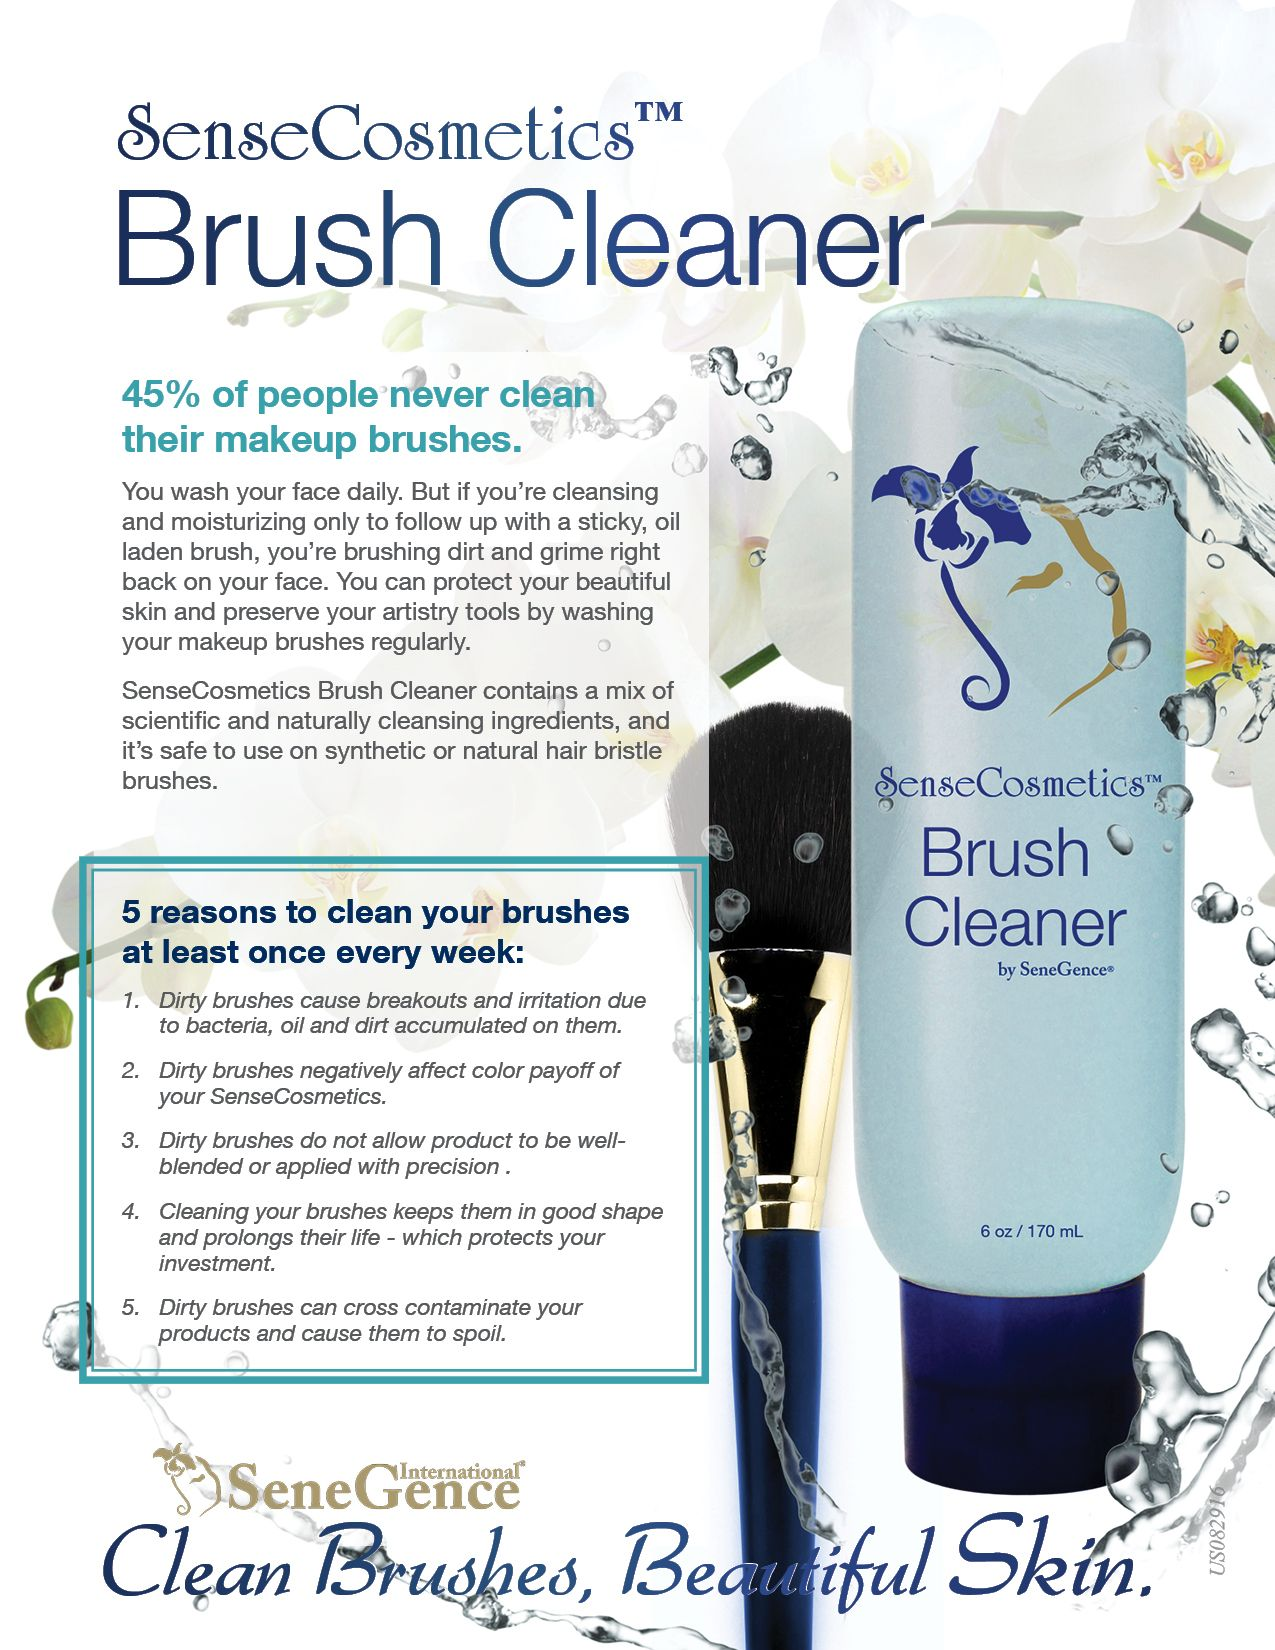 New & Improved SenseCosmetics Brush Cleaner - amazing makeup brush cleaner. 5 reasons to clean your makeup Brushes each week! *Shop now: www.